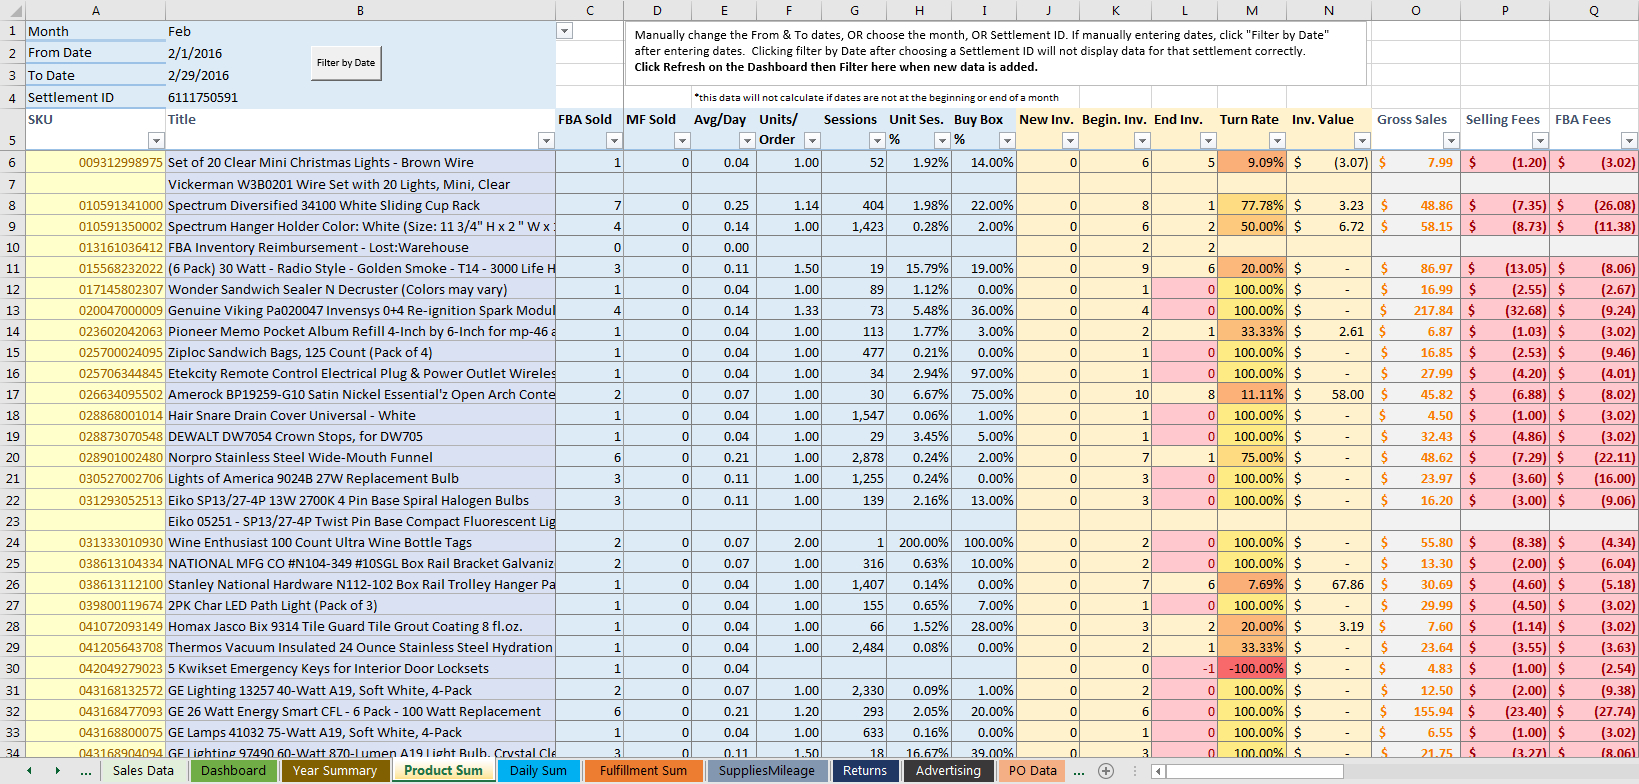 Amazon Fba Accounting Spreadsheet Intended For The Ultimate Amazon Fba Sales Spreadsheet V2 – Tools For Fba